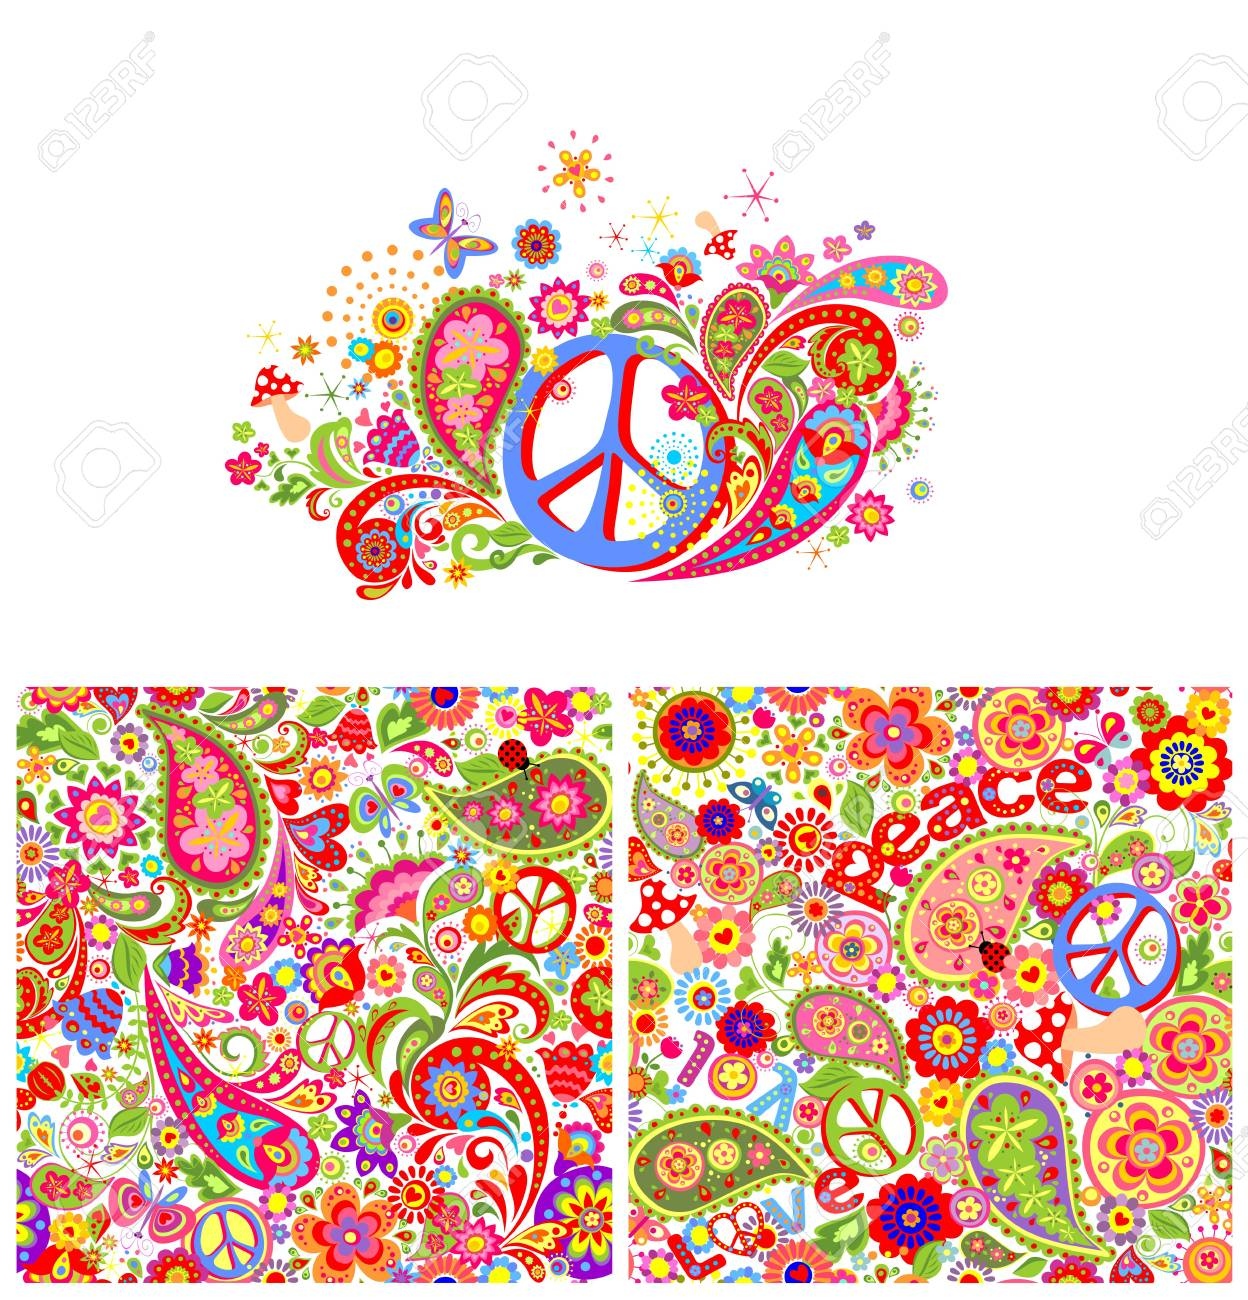 T-shirt print with hippie peace symbol and hippie wallpaper with colorful abstract flowers,